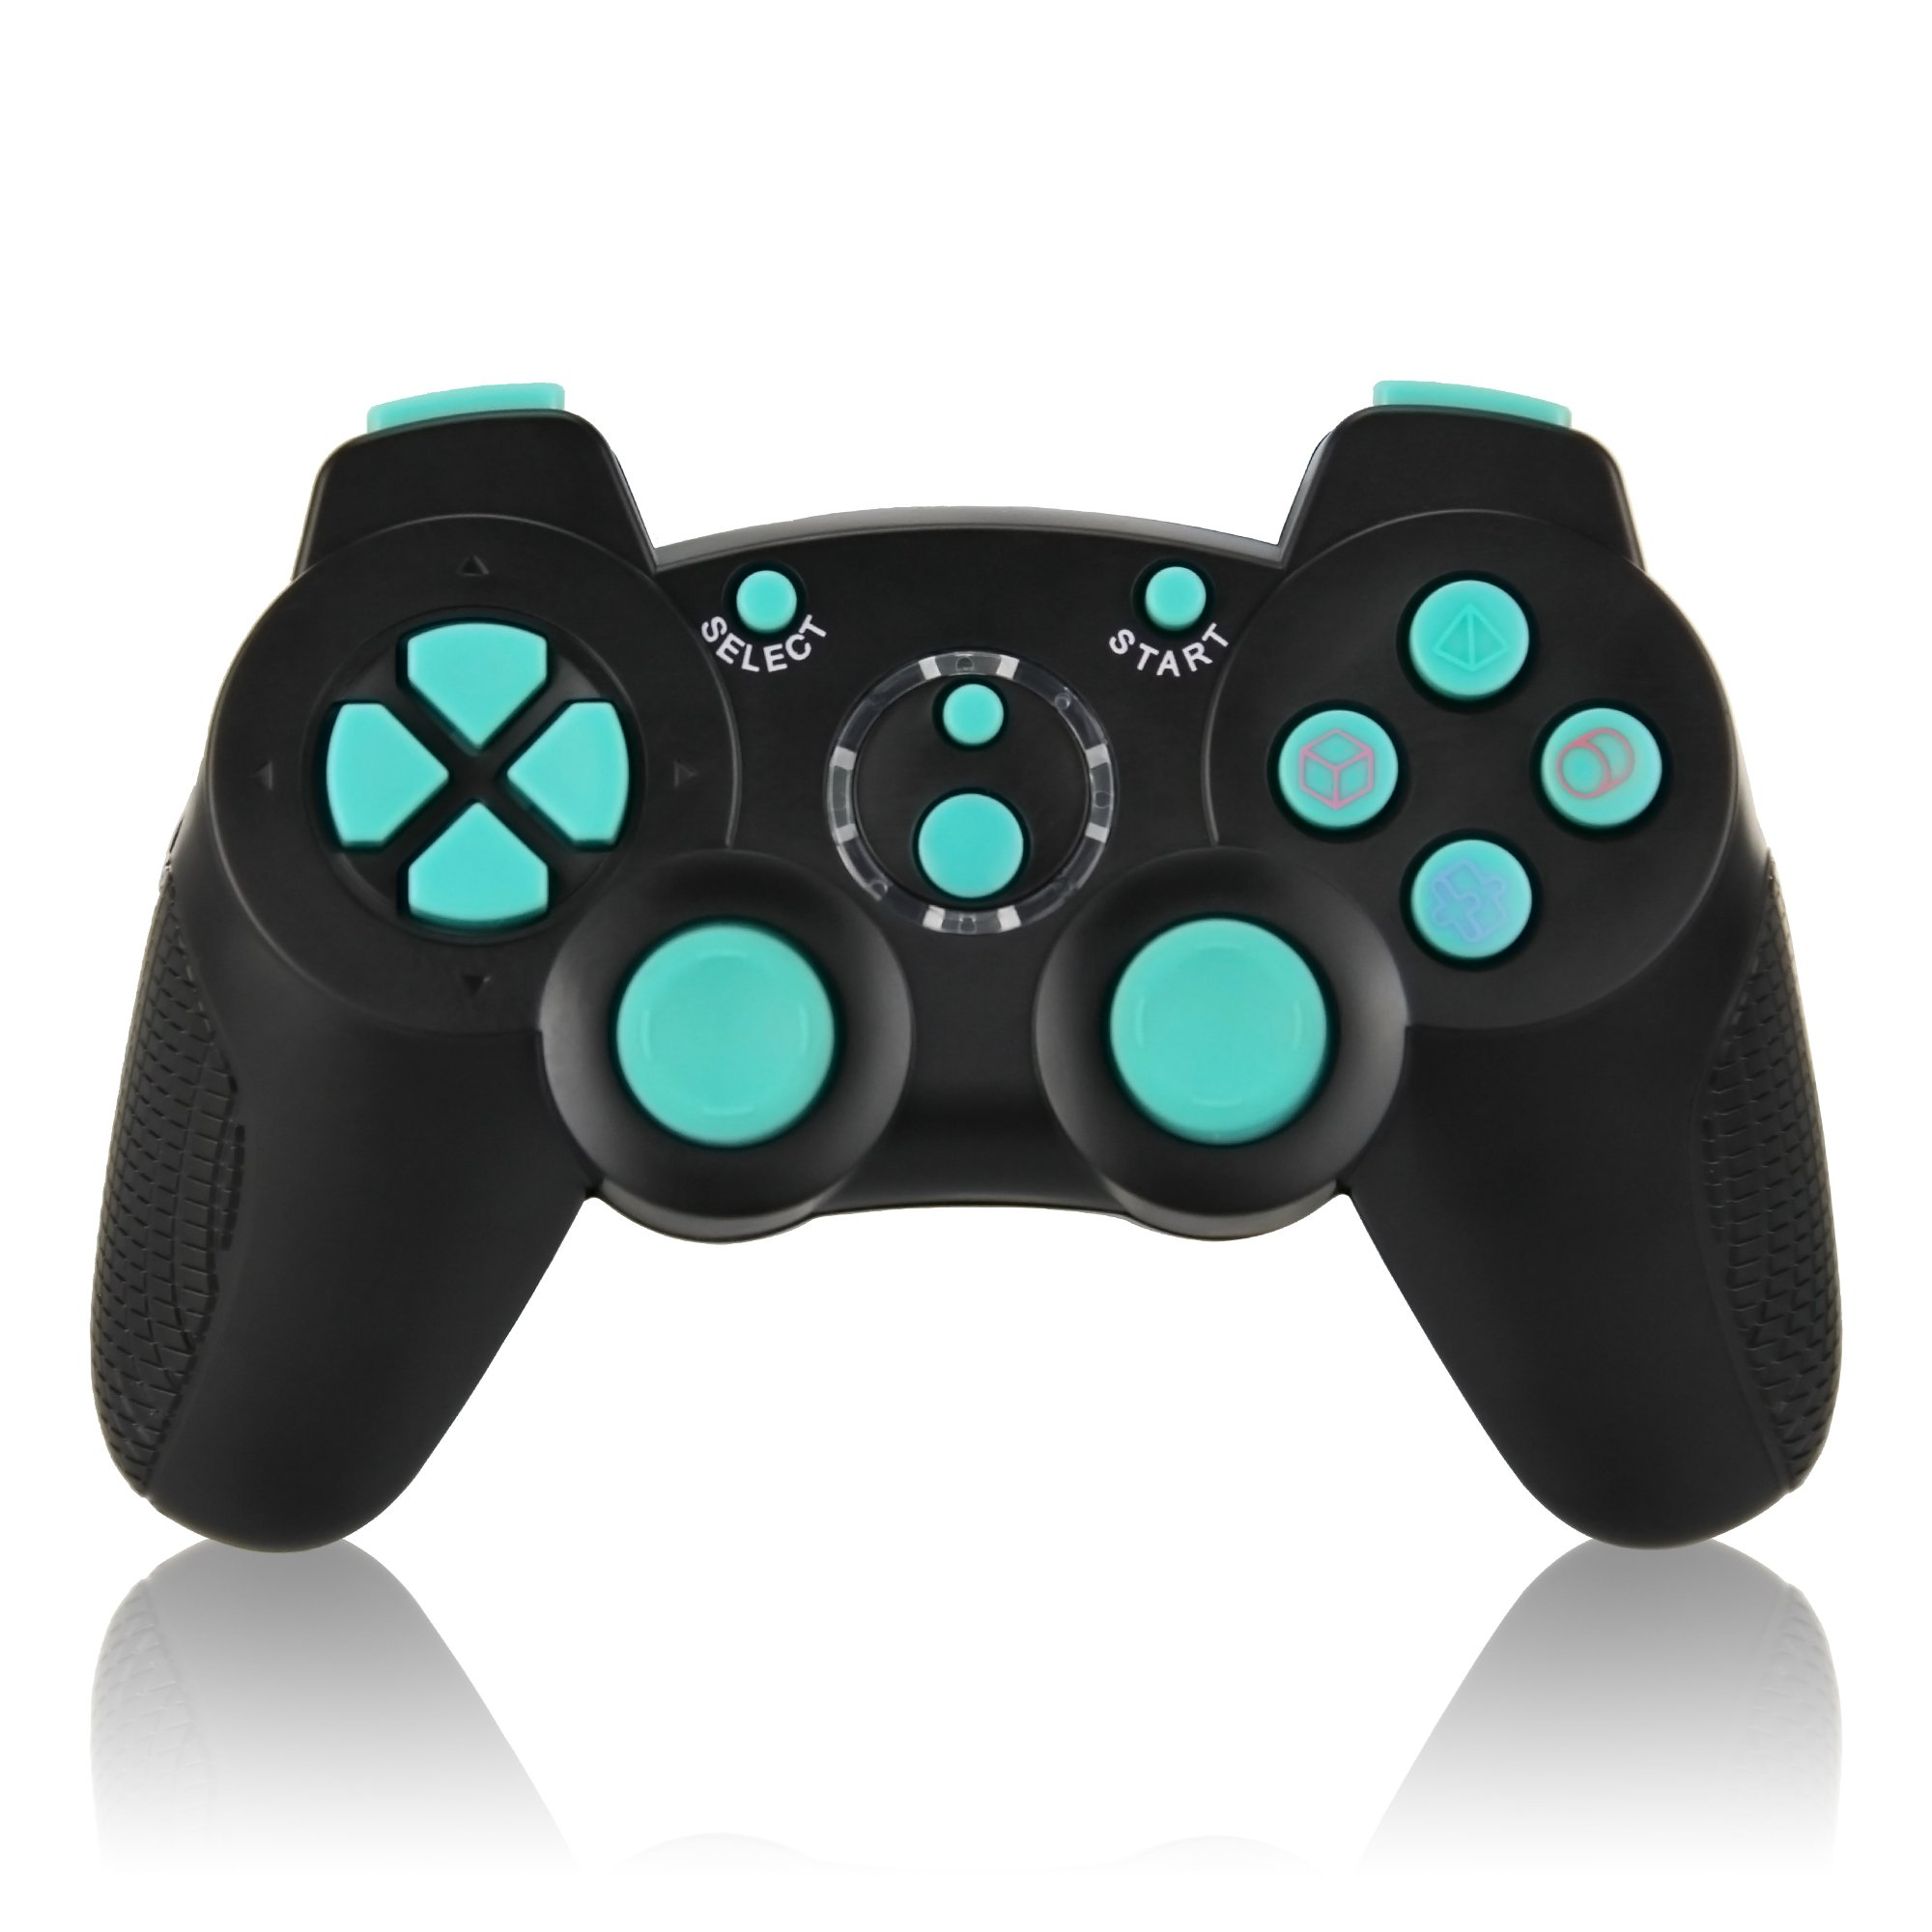 PS3 Controller Wireless, Dual Vibration Sixaxis Game Remote Turbo Gamepad Joystick for Sony PlayStation 3 PS3 (Support Turbo Function)